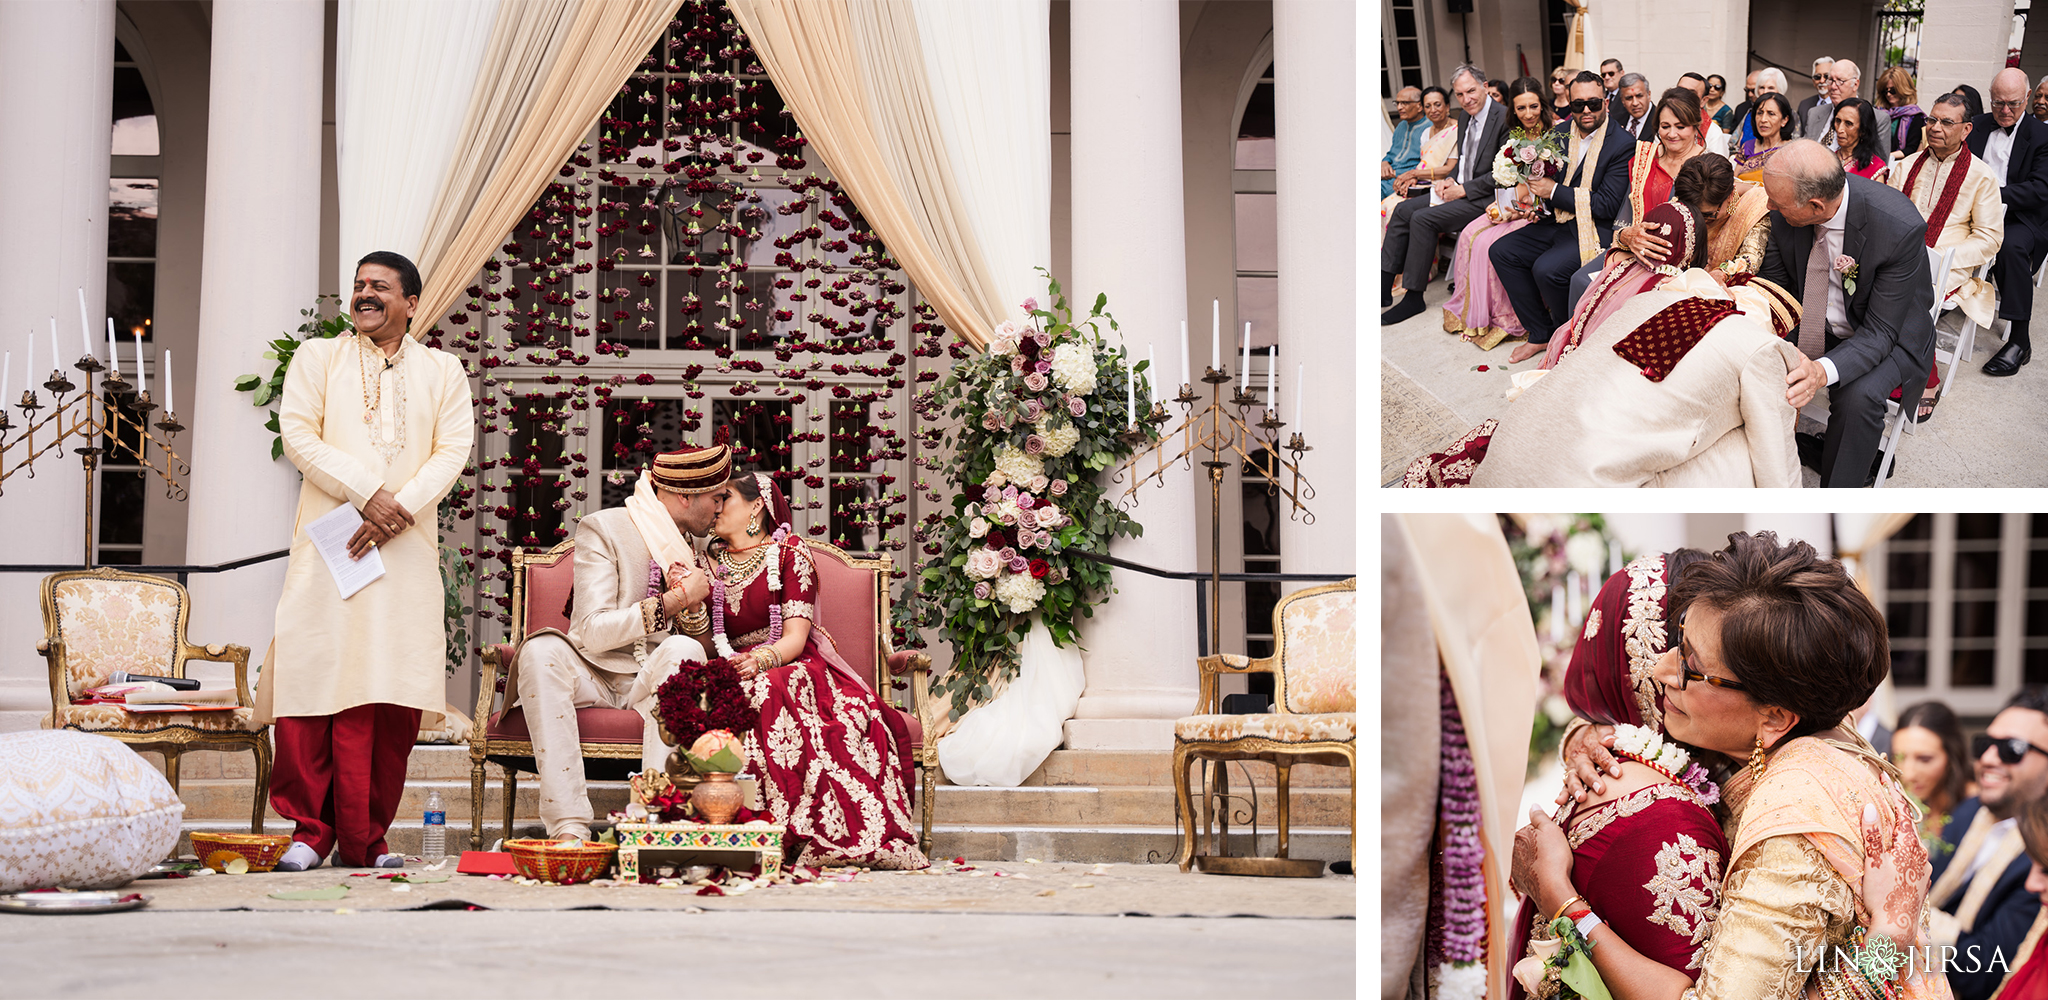 27-The-Ebell-Los-Angeles-Indian-Wedding-Ceremony-Photography.jpg